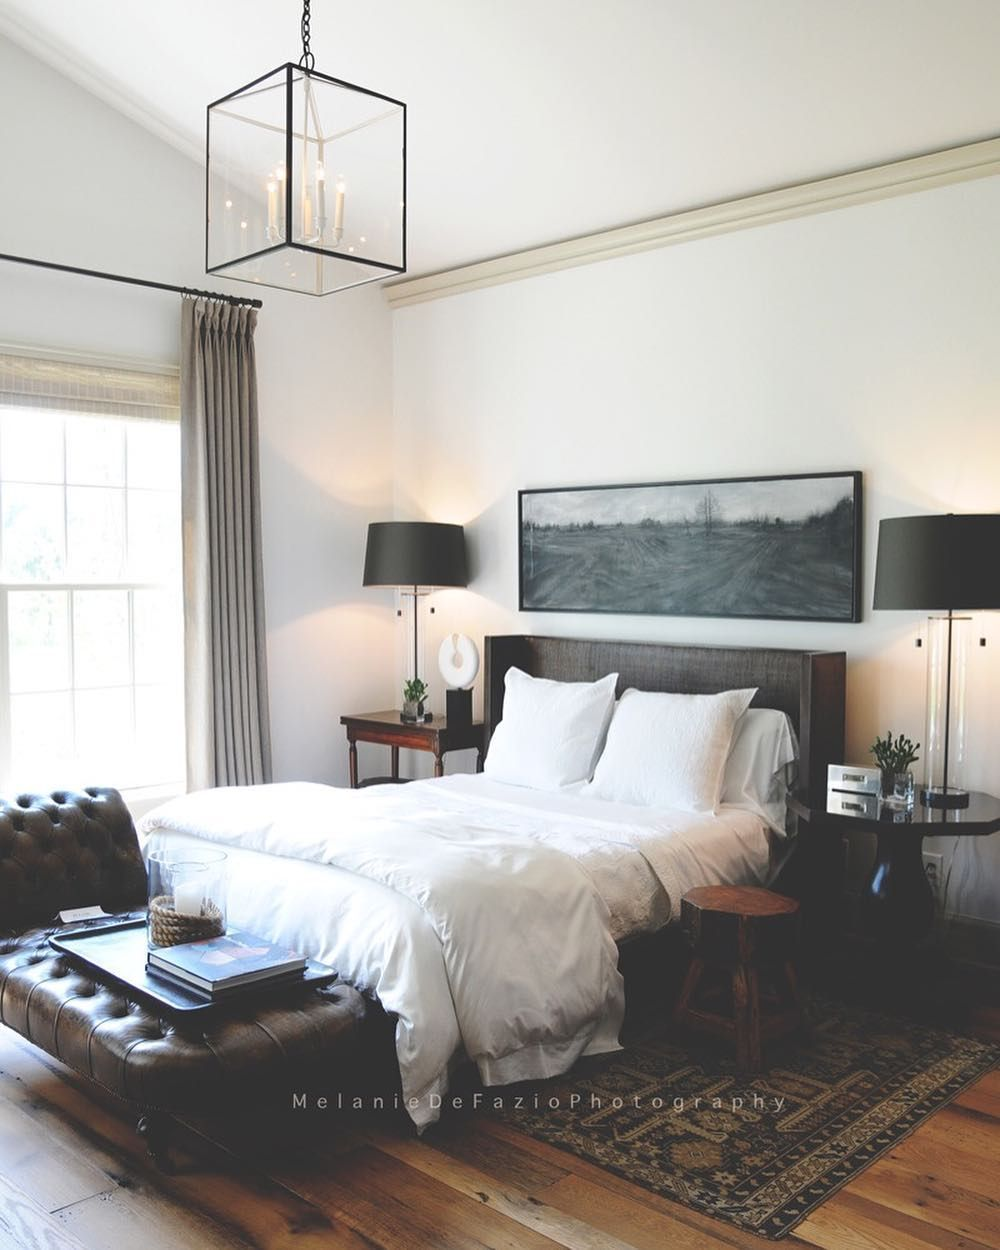 This Moody Spot Is My Kind Of Bedroom. Love The Contrast